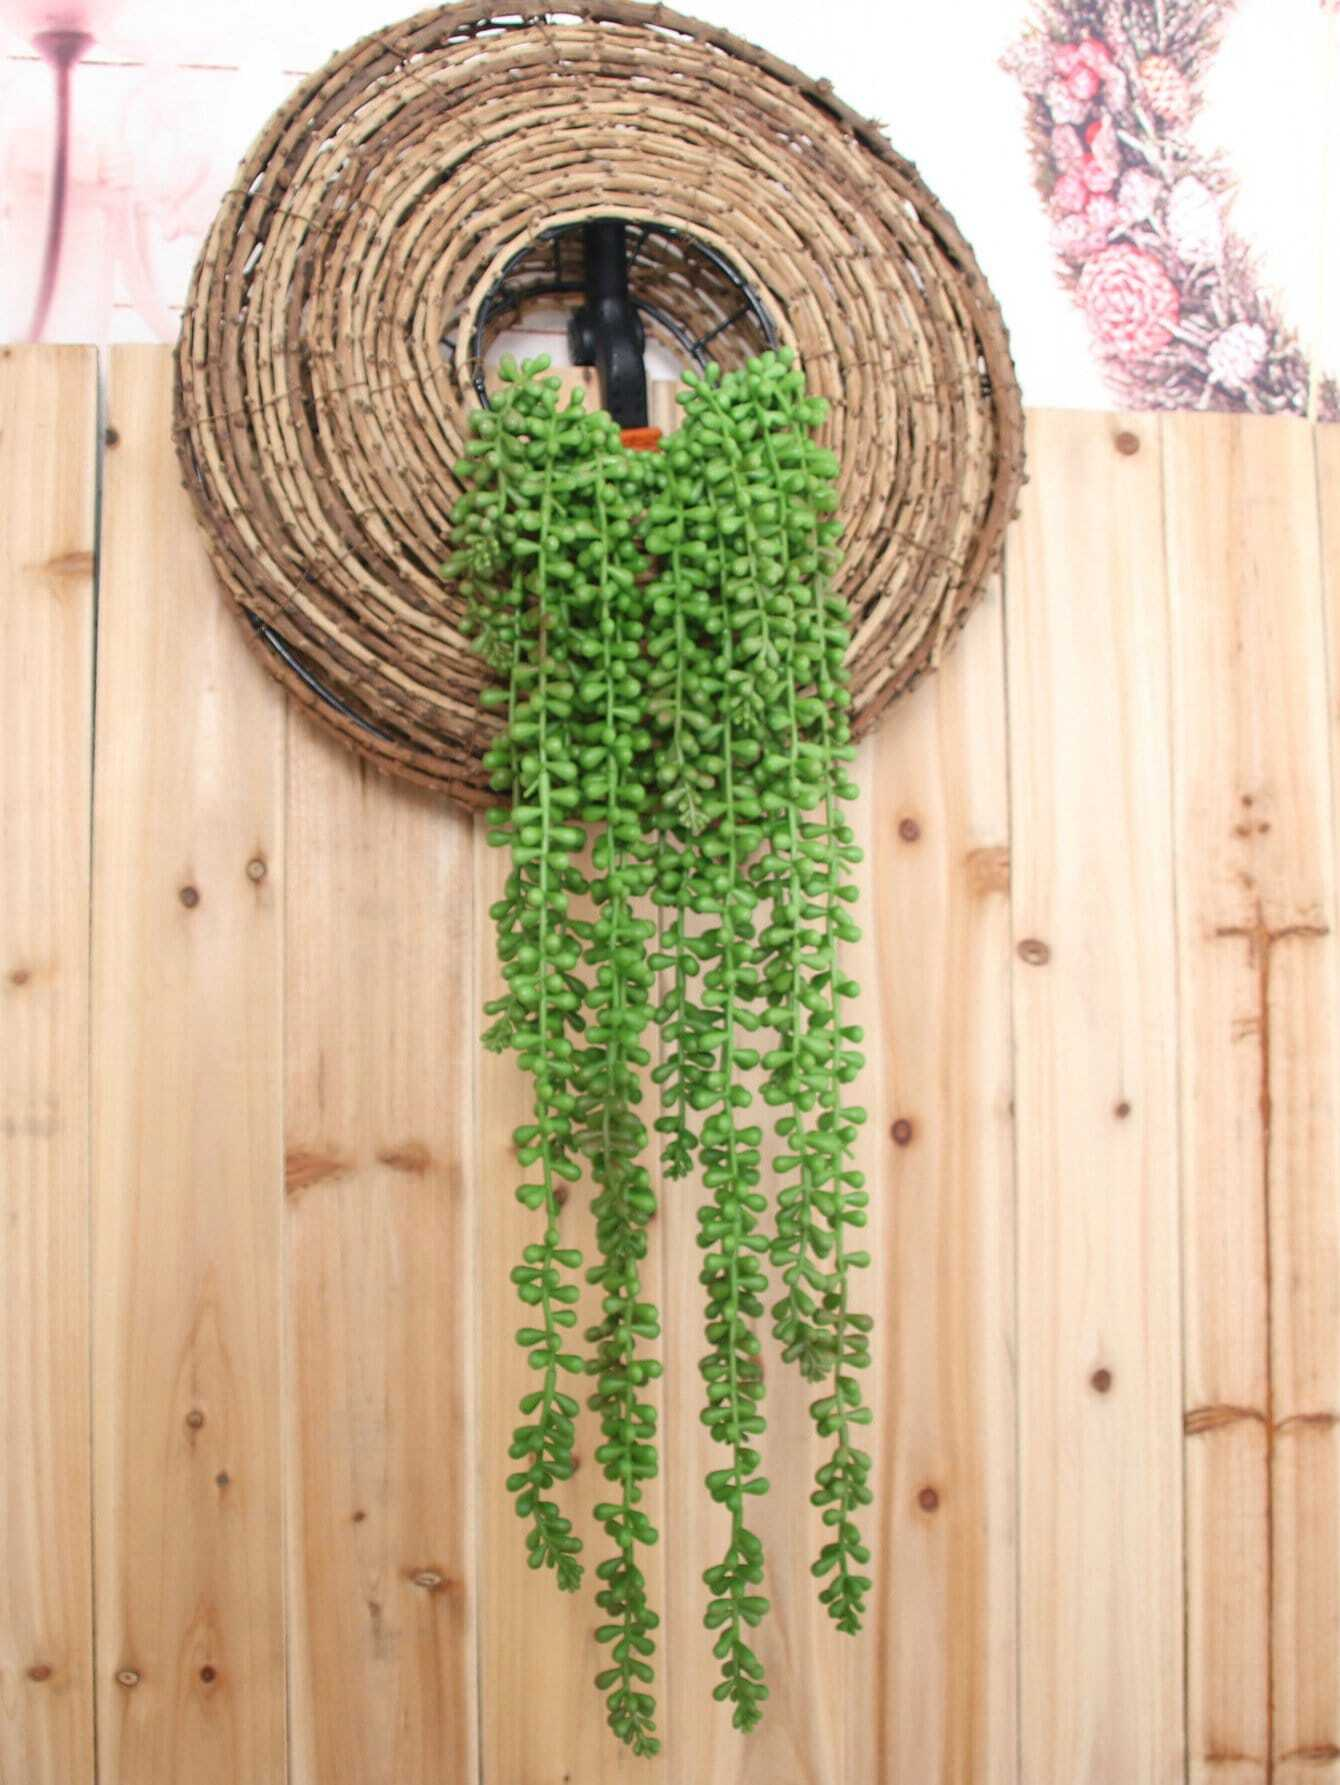 Artificial Hanging Plant 1pc With 5pcs Branches